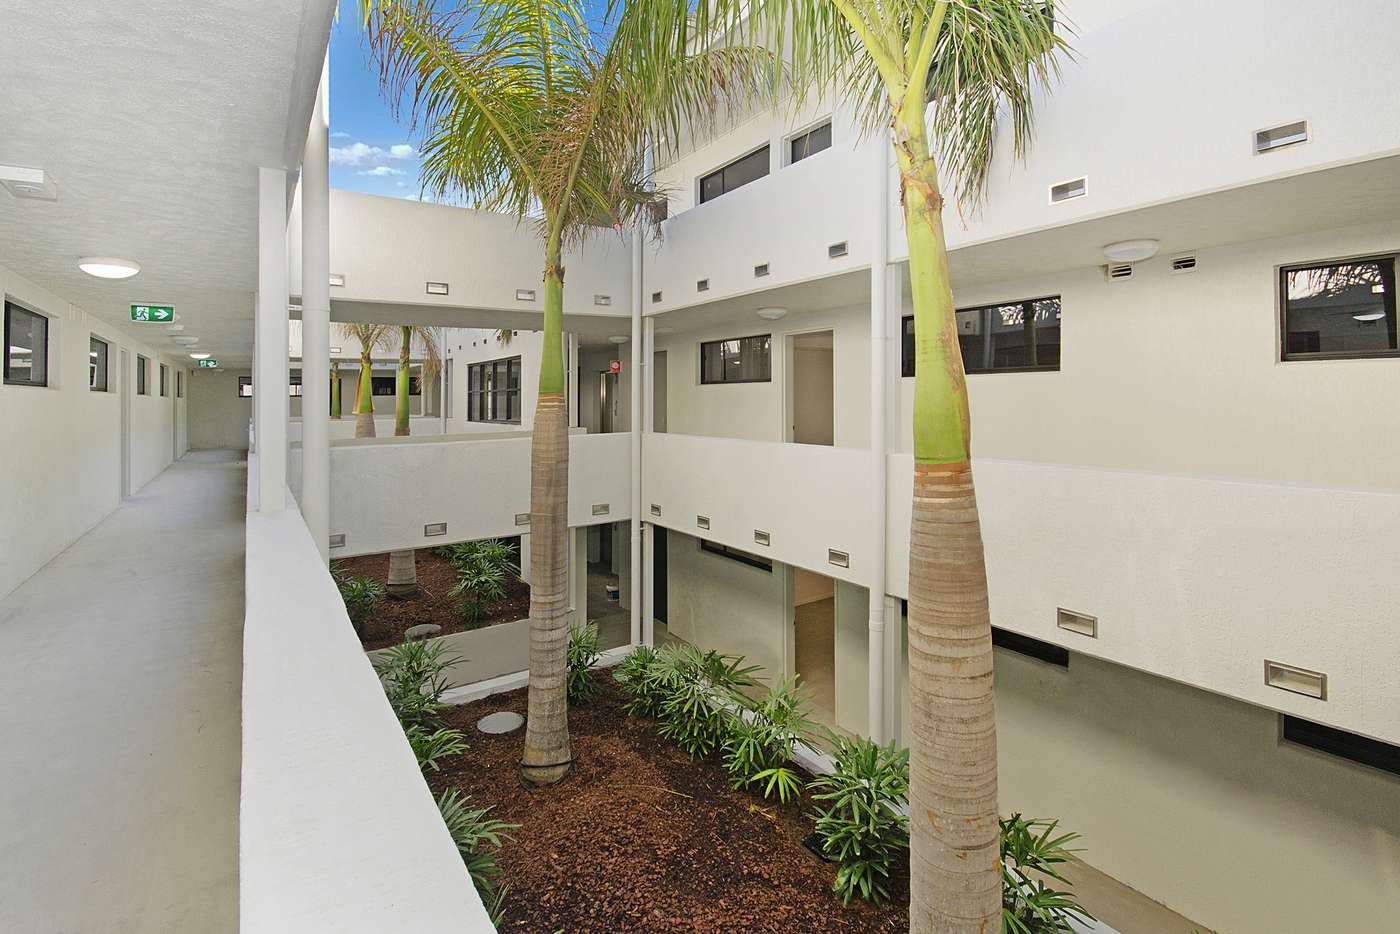 Seventh view of Homely apartment listing, 25/23 Melton Terrace, Townsville City QLD 4810